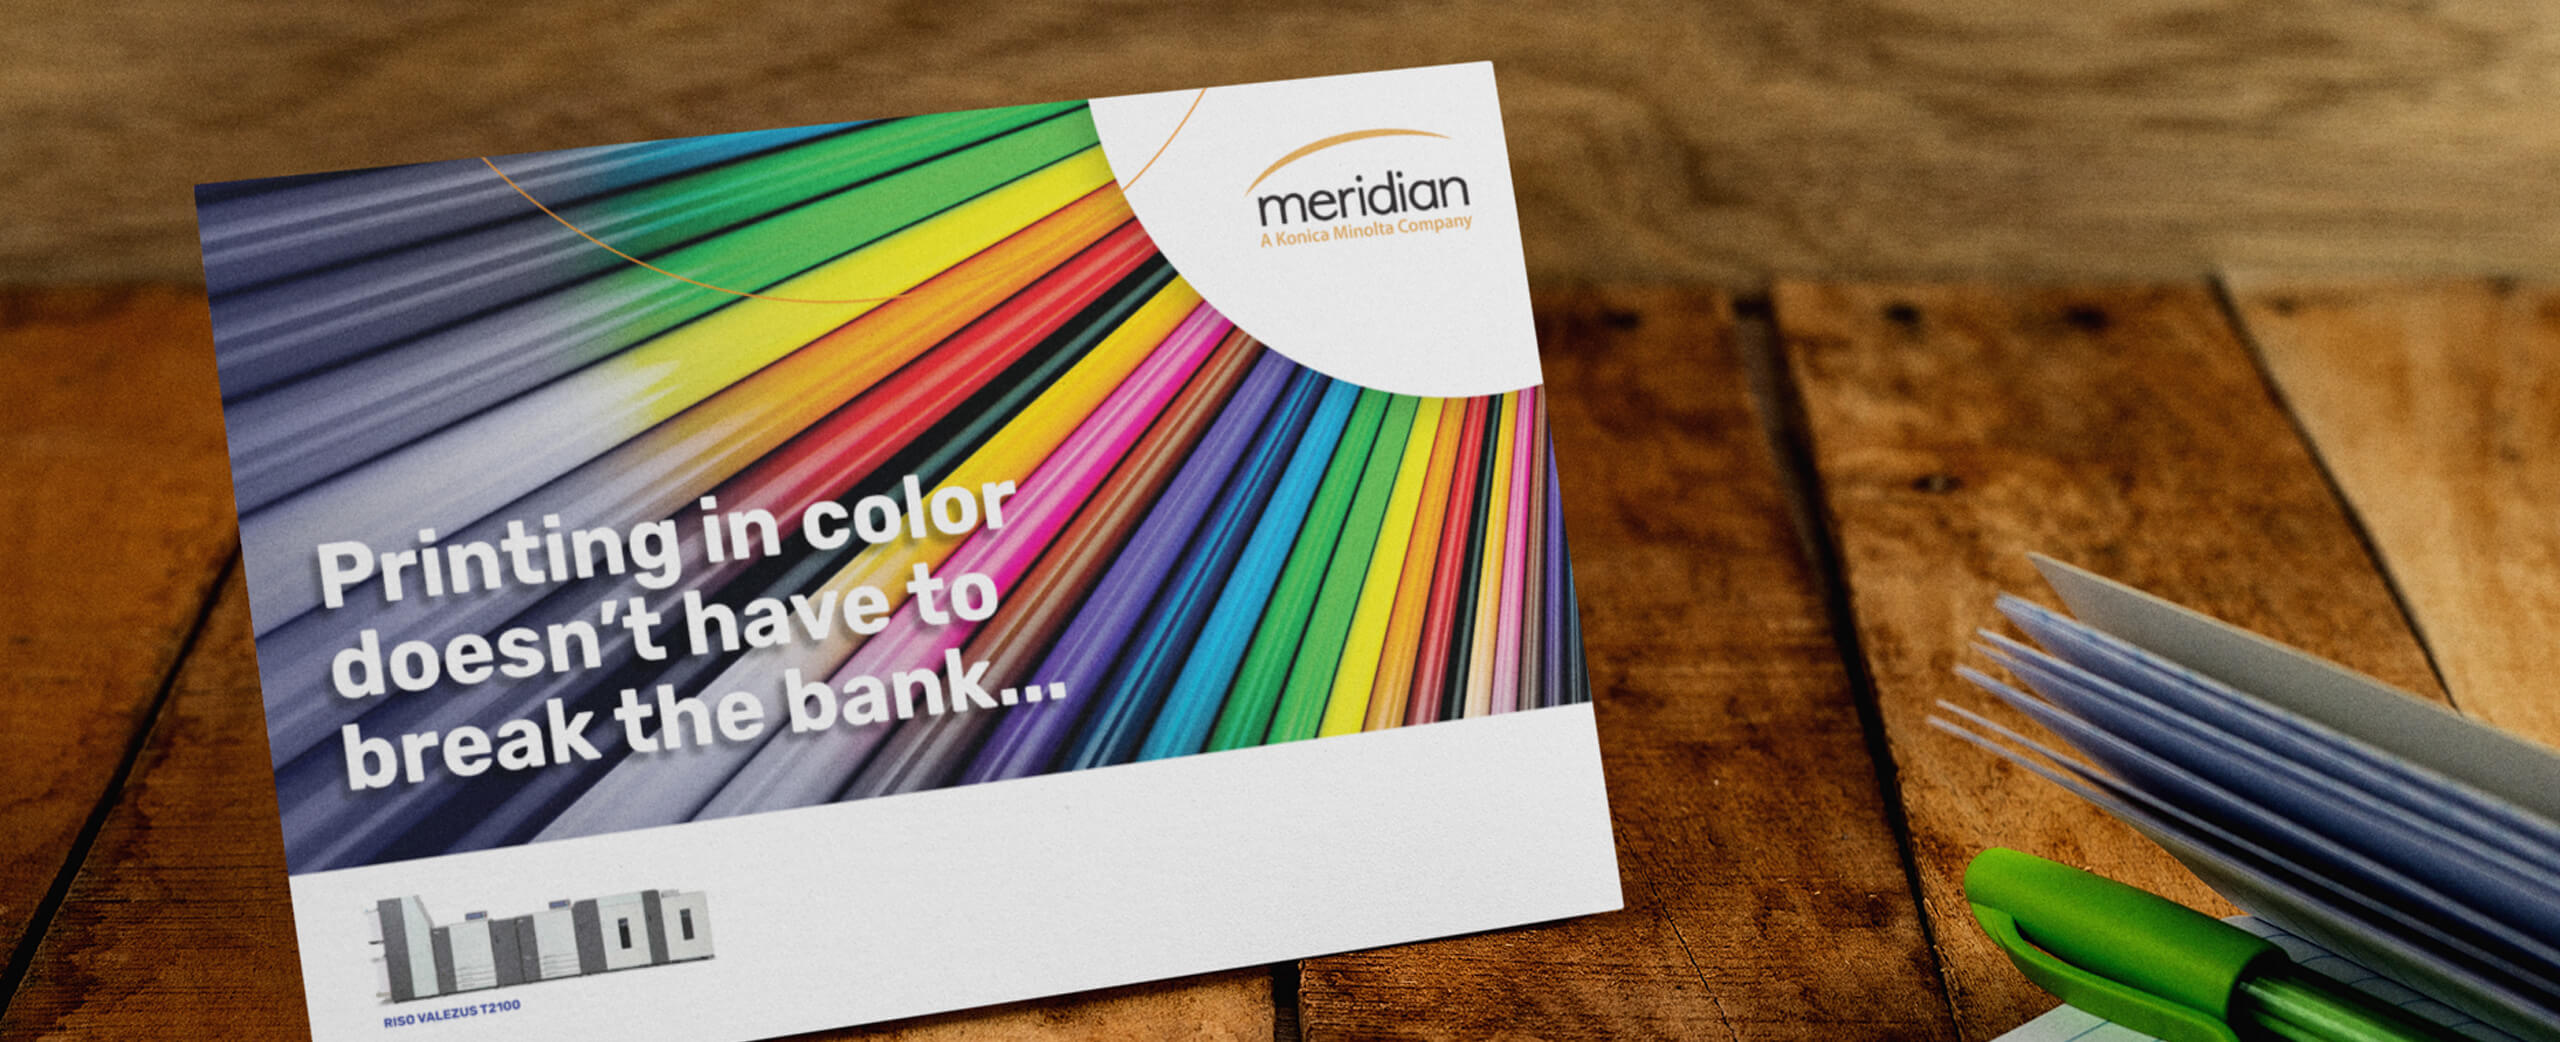 dmg-marketing-collateral-meridian-postcard